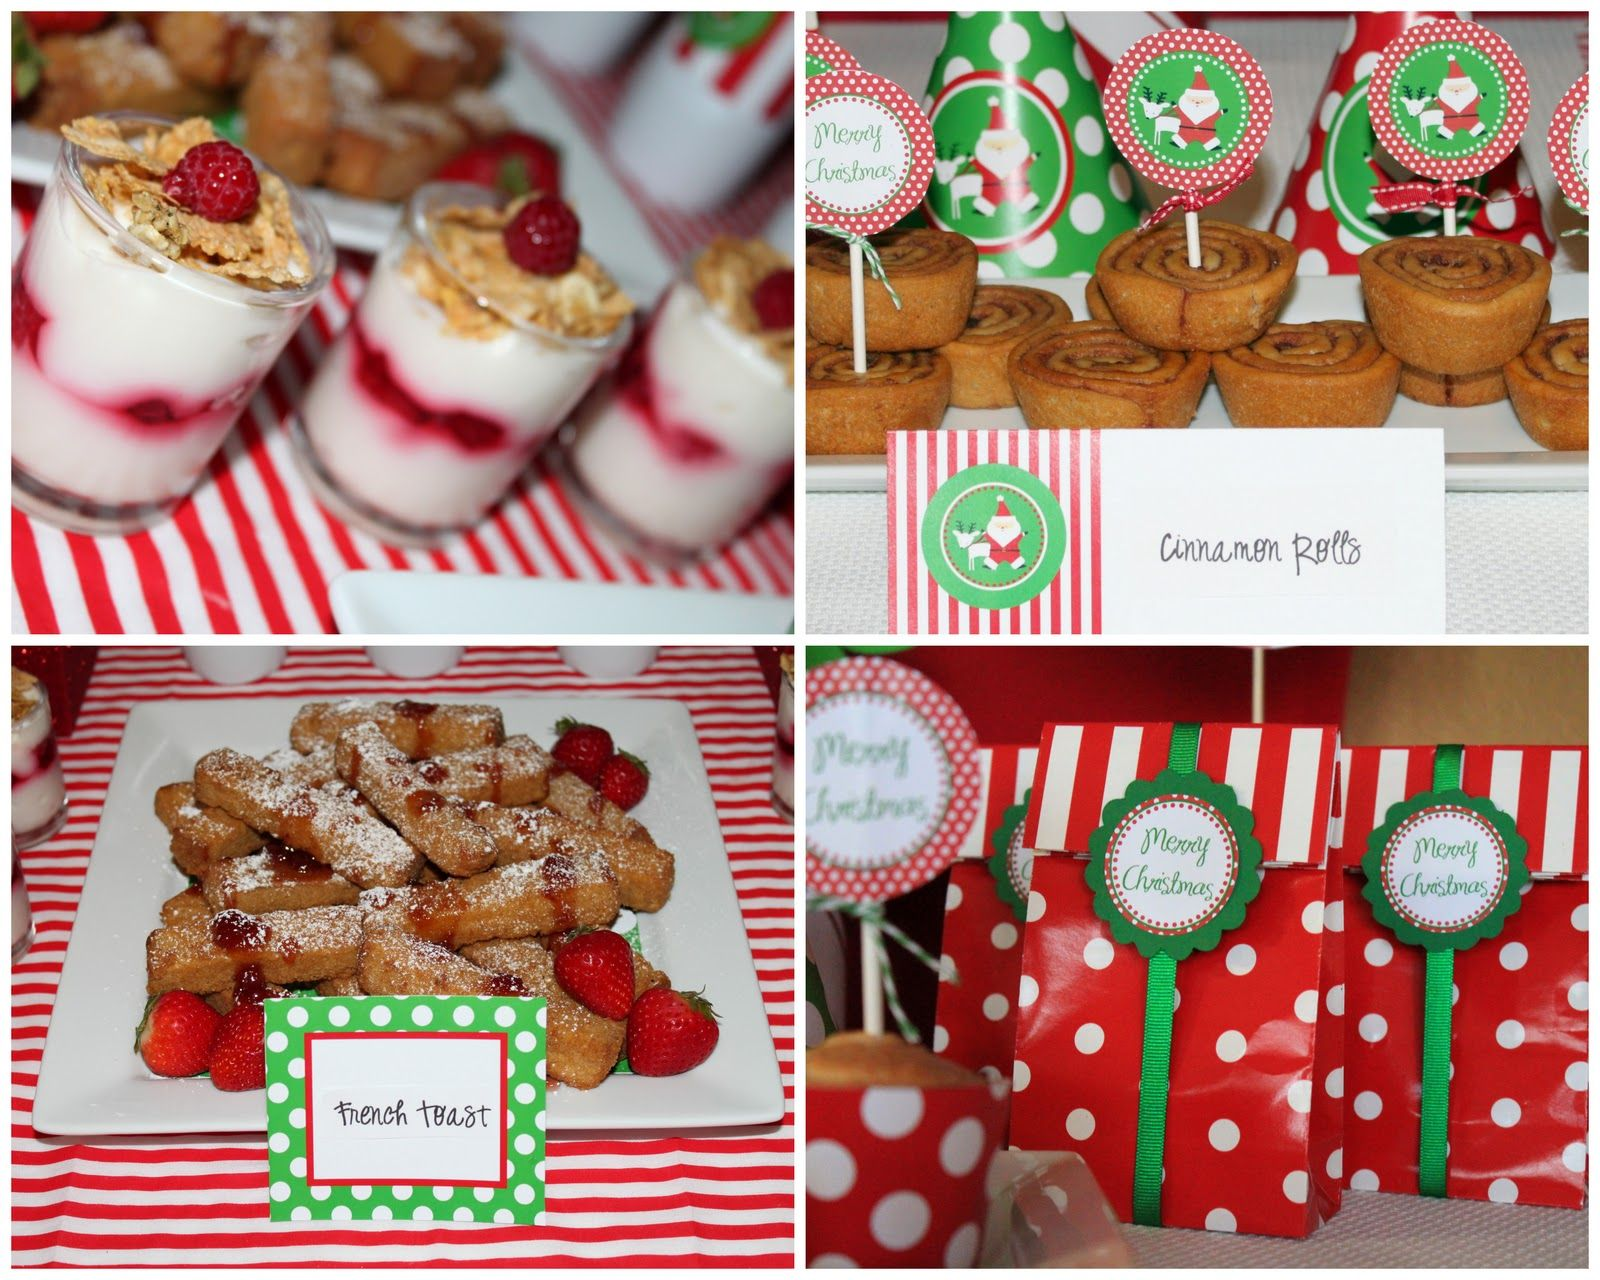 Lovely Christmas Breakfast Party Ideas Part - 5: North Pole Breakfast 2011